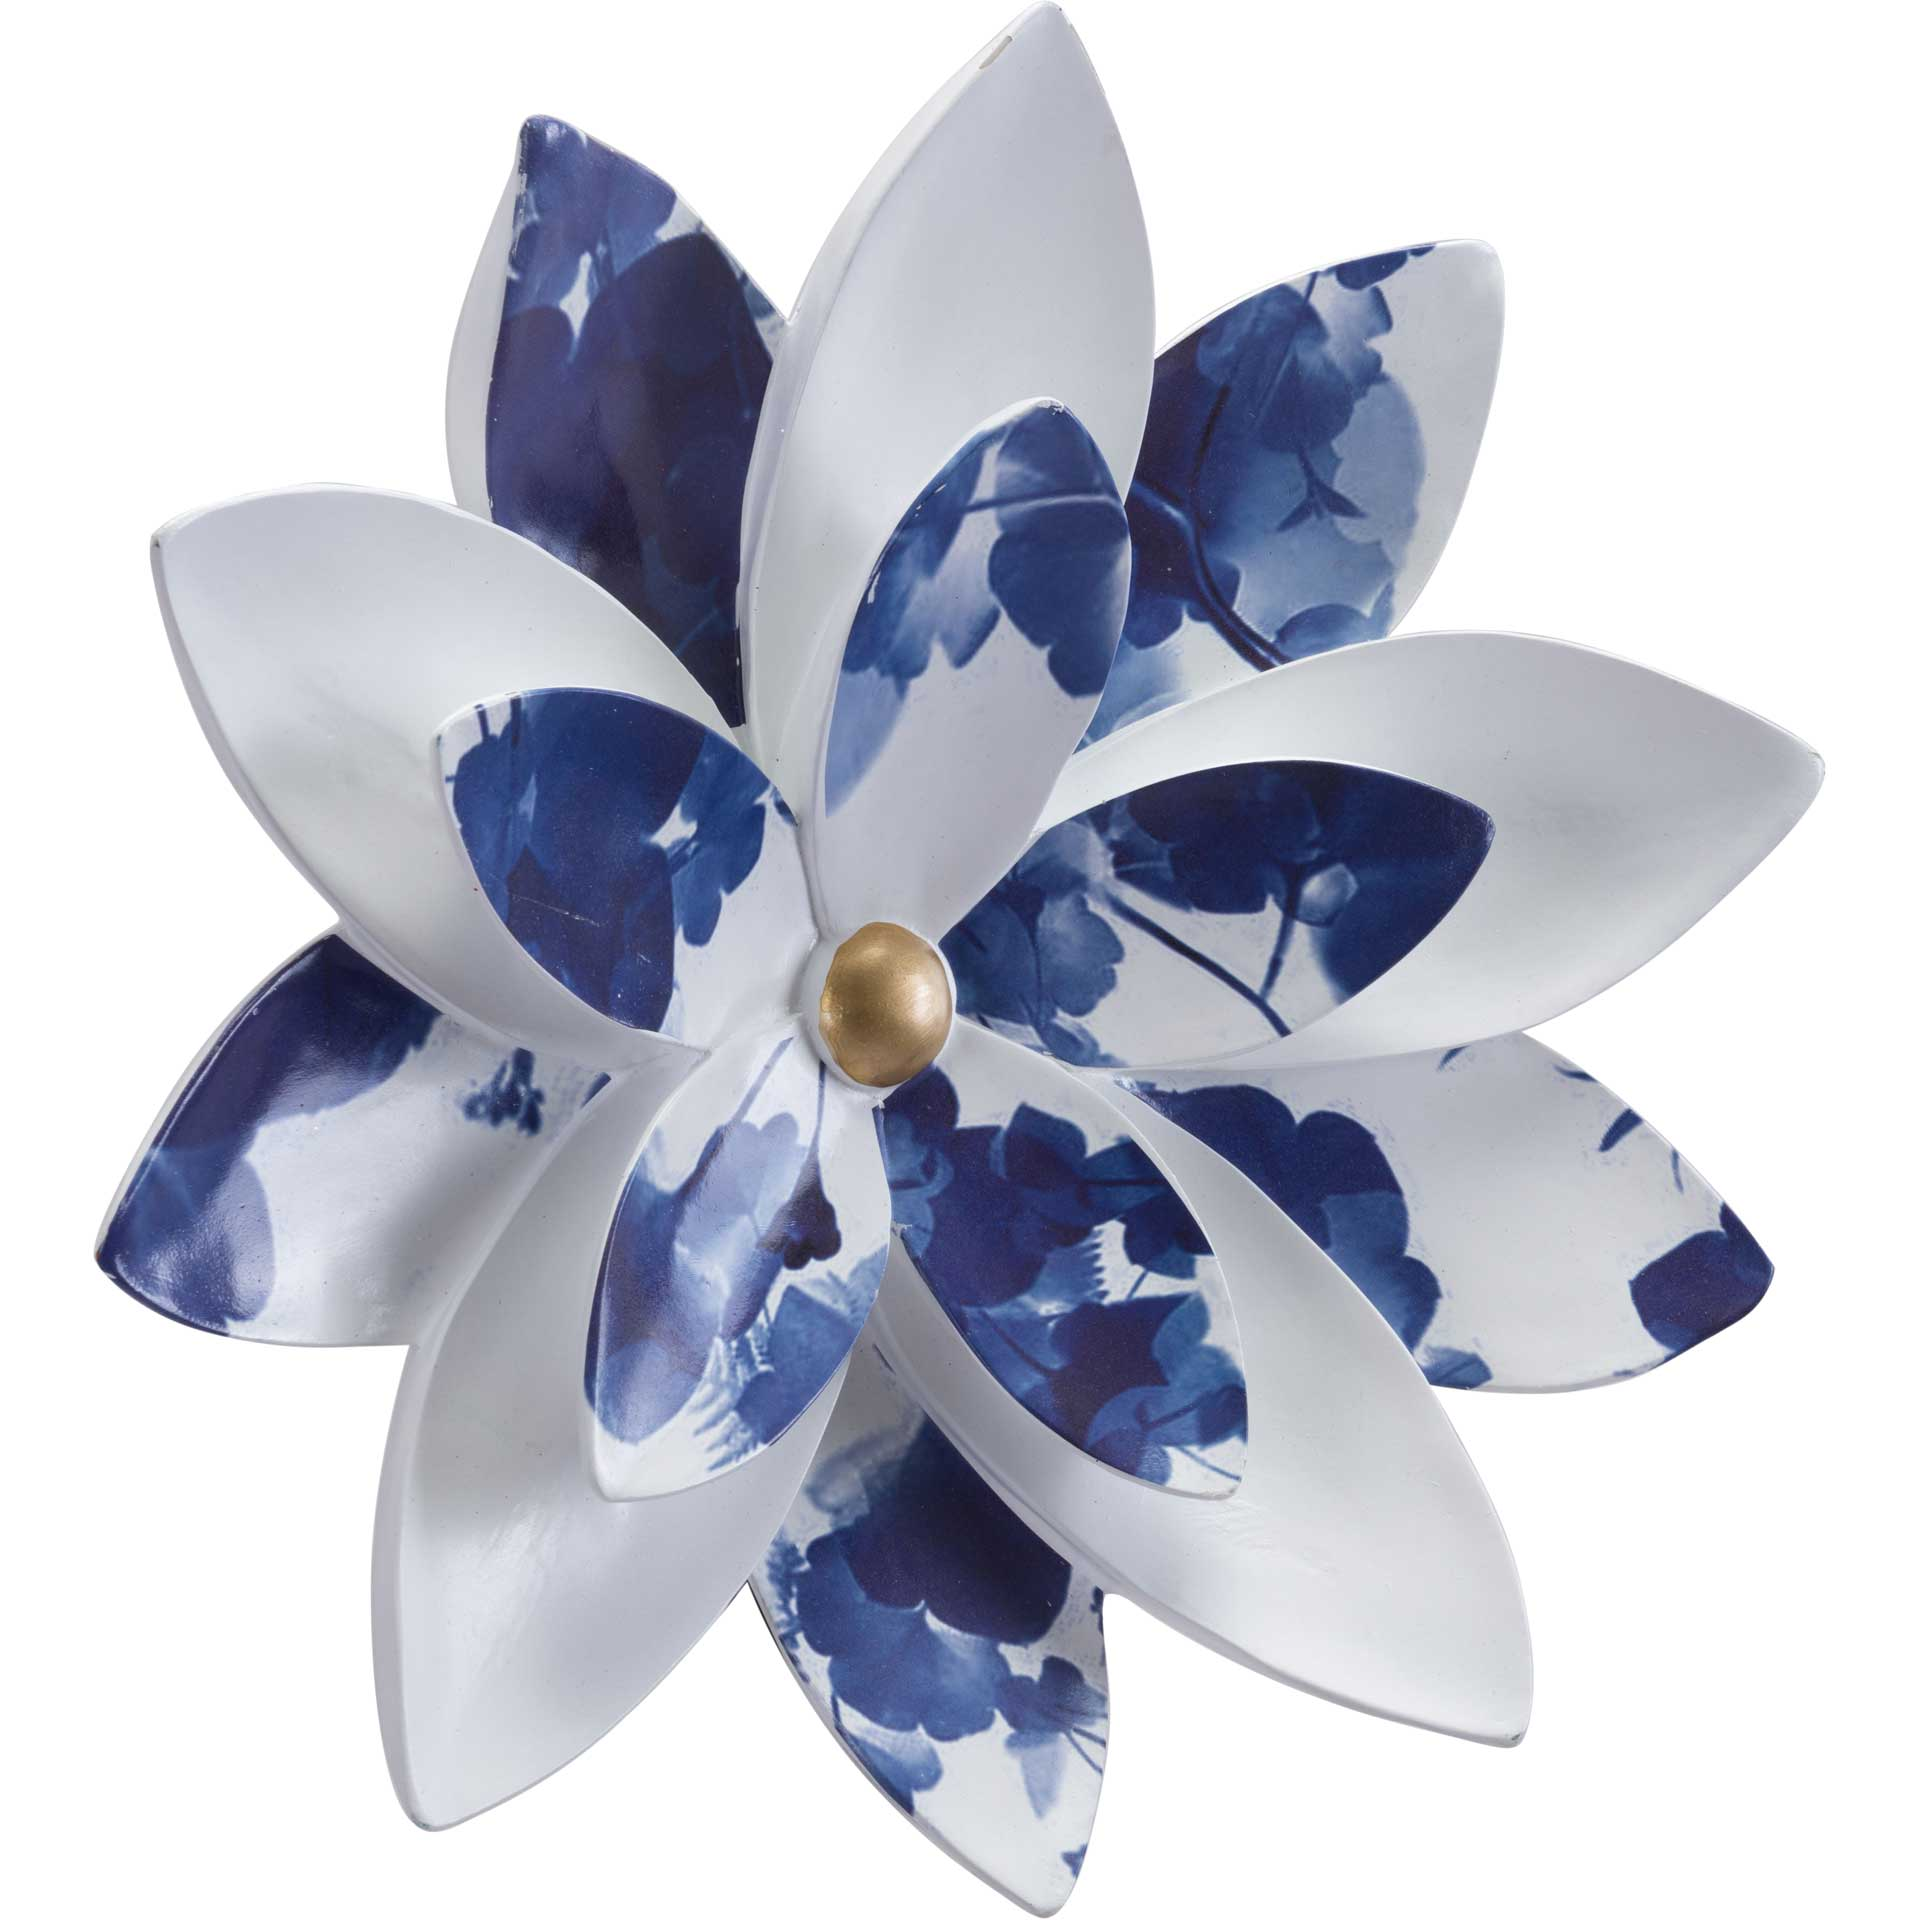 Margarita Wall Decor White/Blue